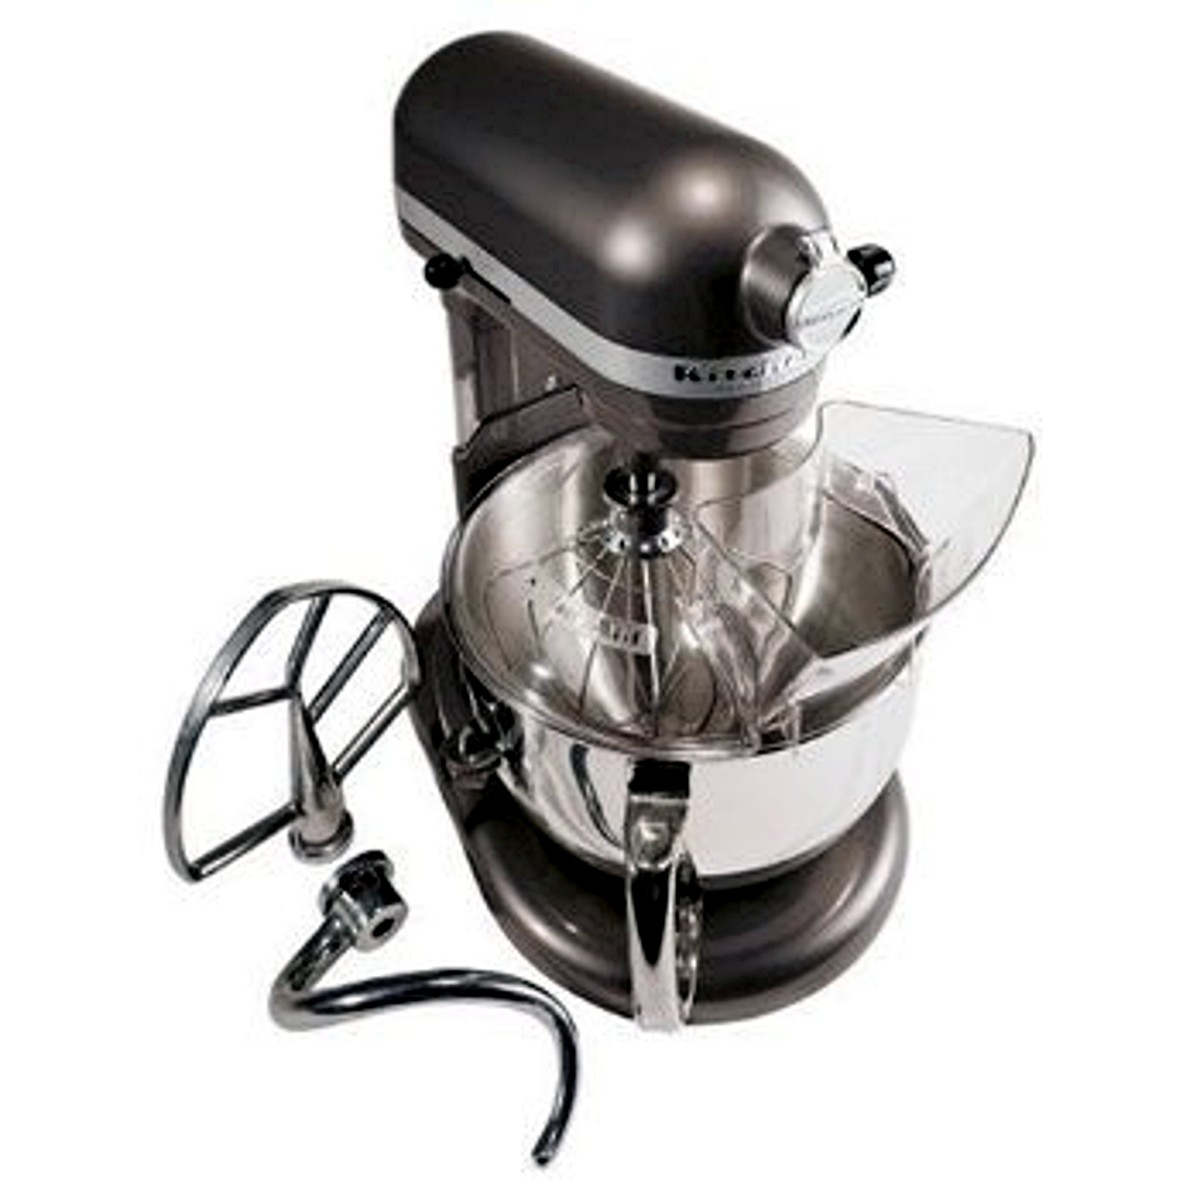 Kitchenaid Professional 600 Series Stand Mixer Review